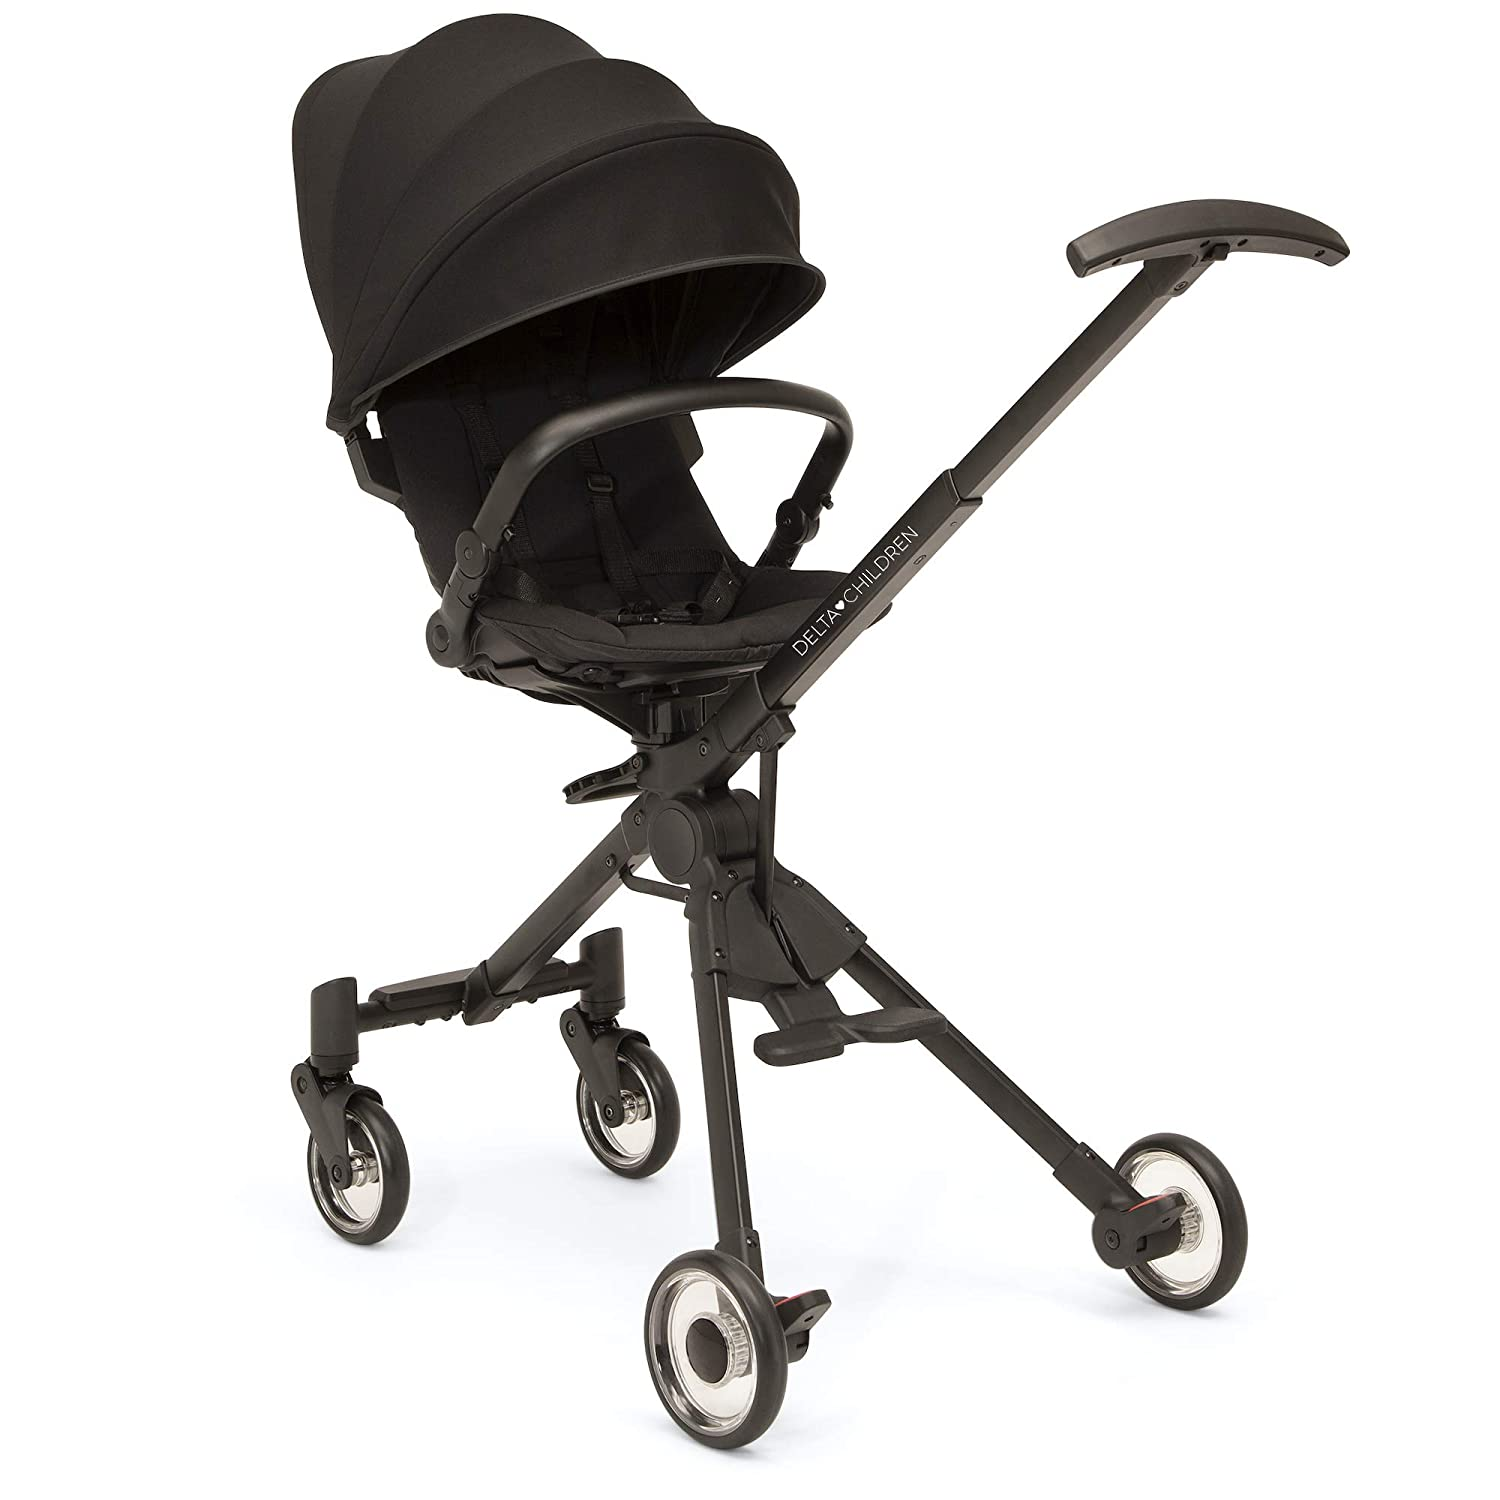 Delta Children Spyder Stroller - Lightweight/Compact Travel Stroller Features Extendable Canopy & Recline - Car Seat Adapter Included - Easy-Coast Puncture-Proof Wheels, Black